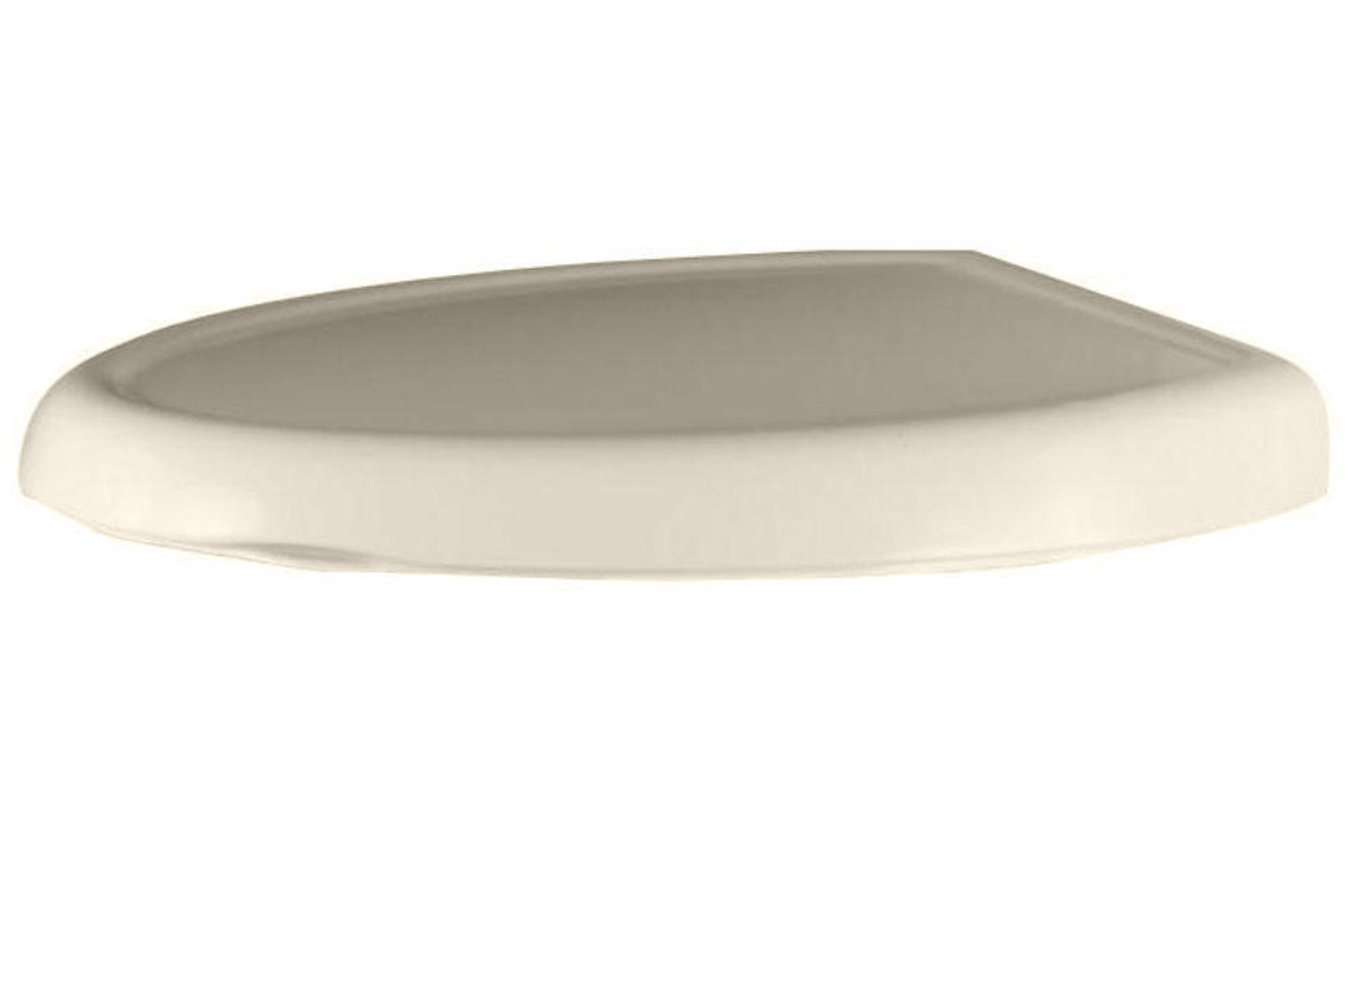 Bone American Standard 5345.110.021 Cadet-3 Round Front Slow Close Toilet Seat with EverClean Surface